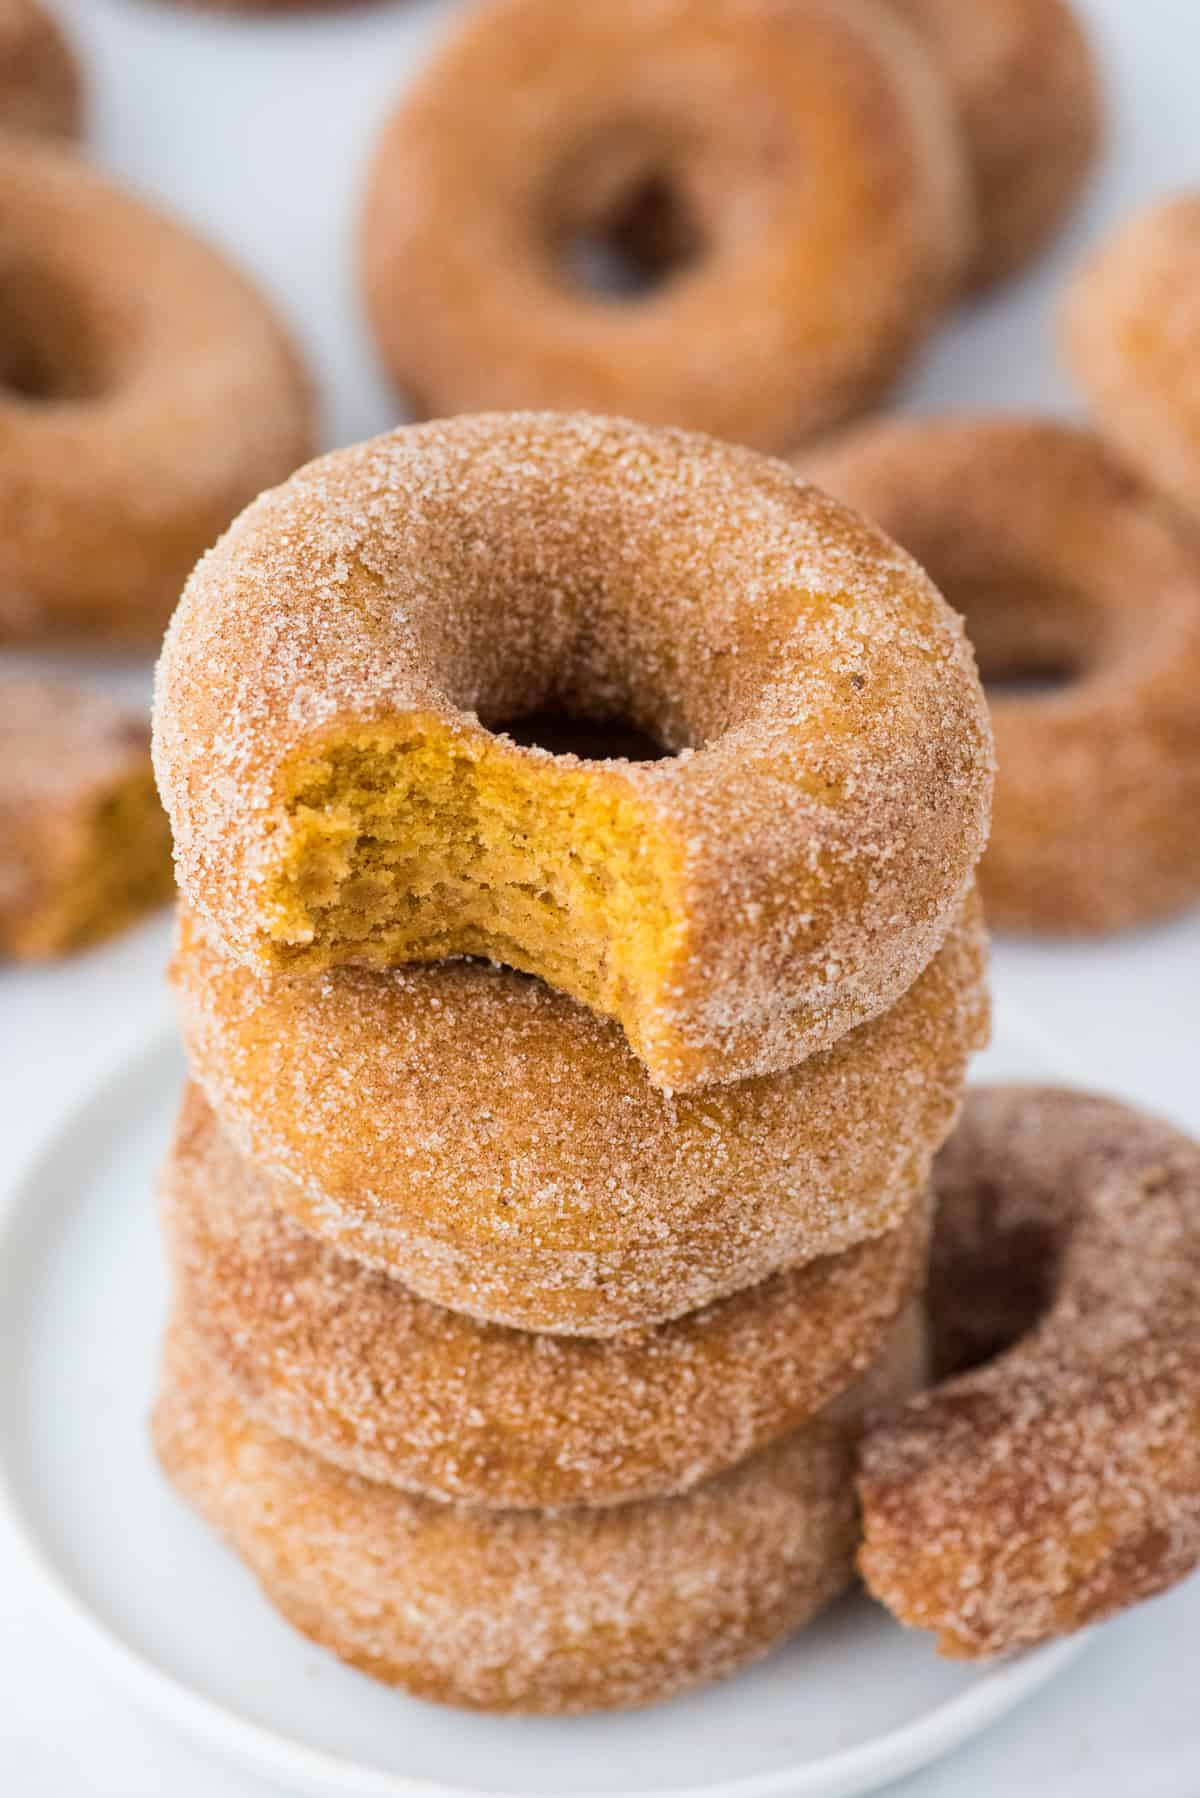 4 pumpkin spice donuts stacked on a white plate. Top donut has a bite removed.